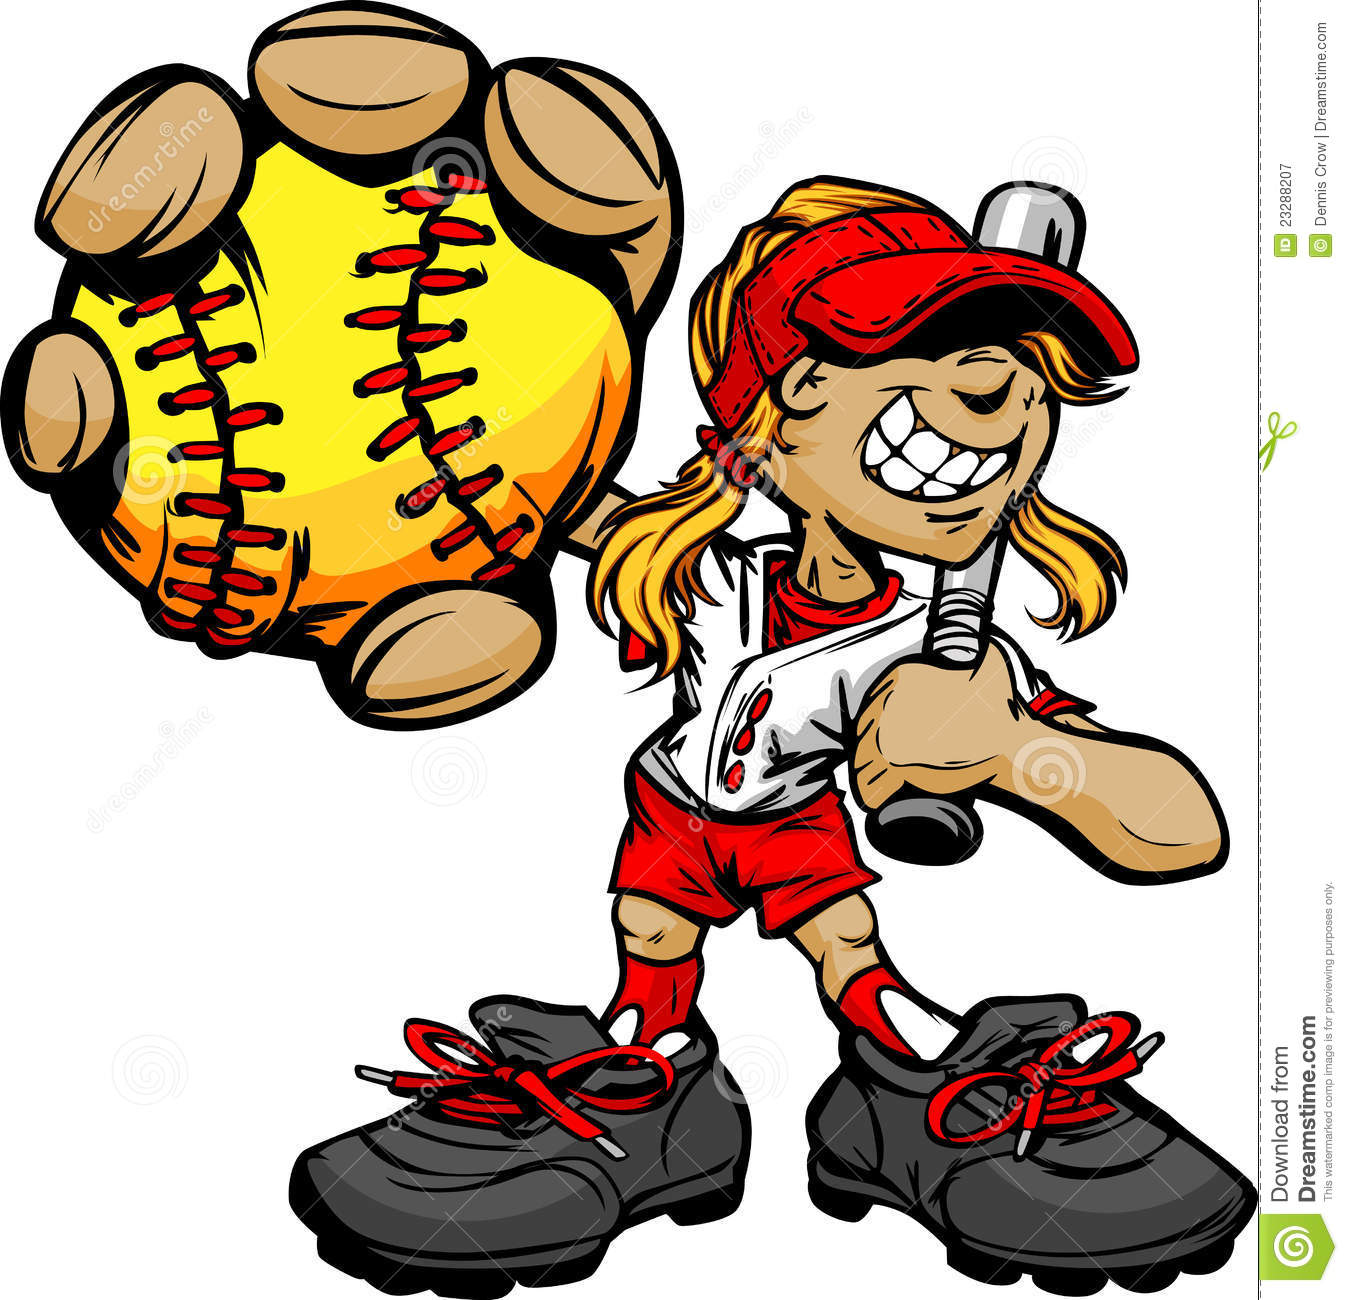 Fastball Clipart | Clipart Panda - Free Clipart Images